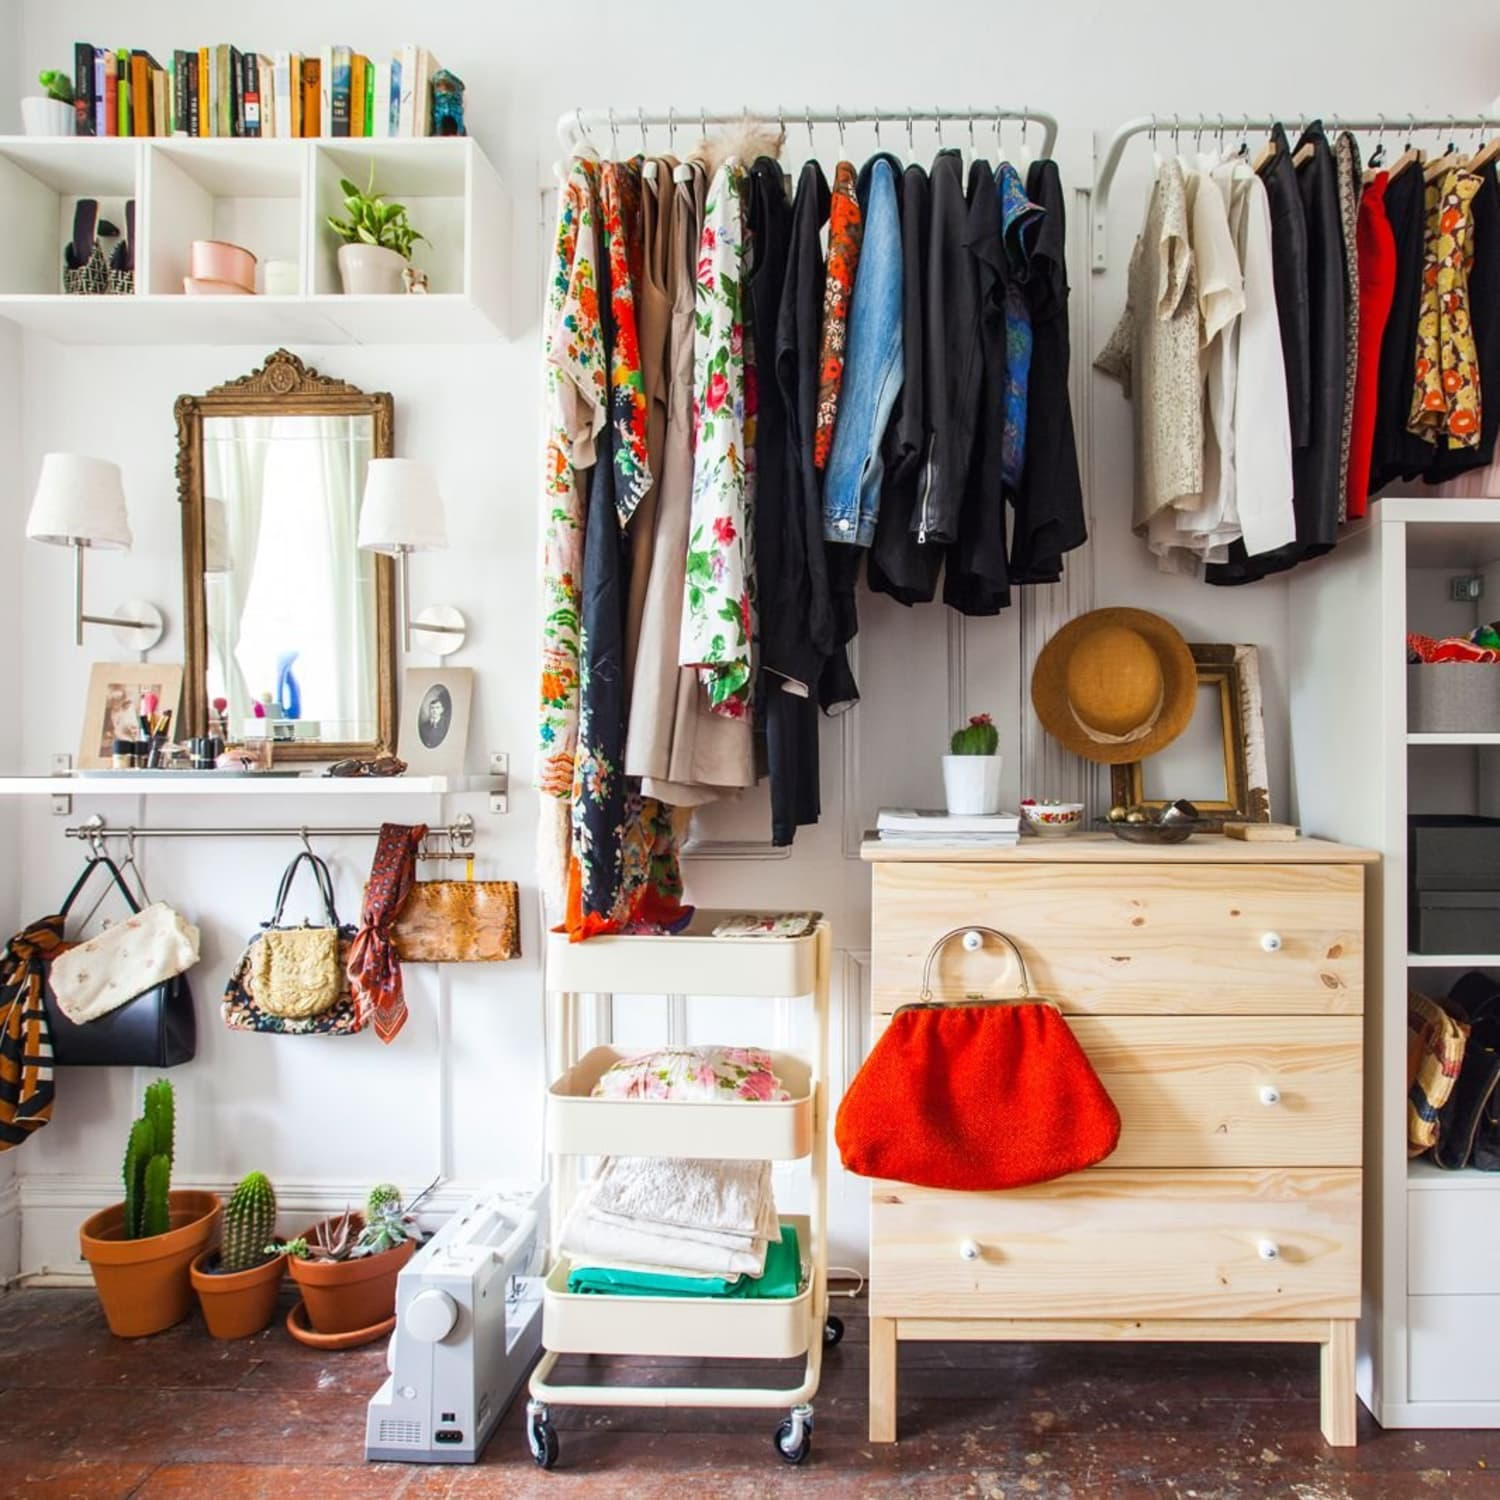 How to Make Room for Clothes Without Closet | Apartment Therapy